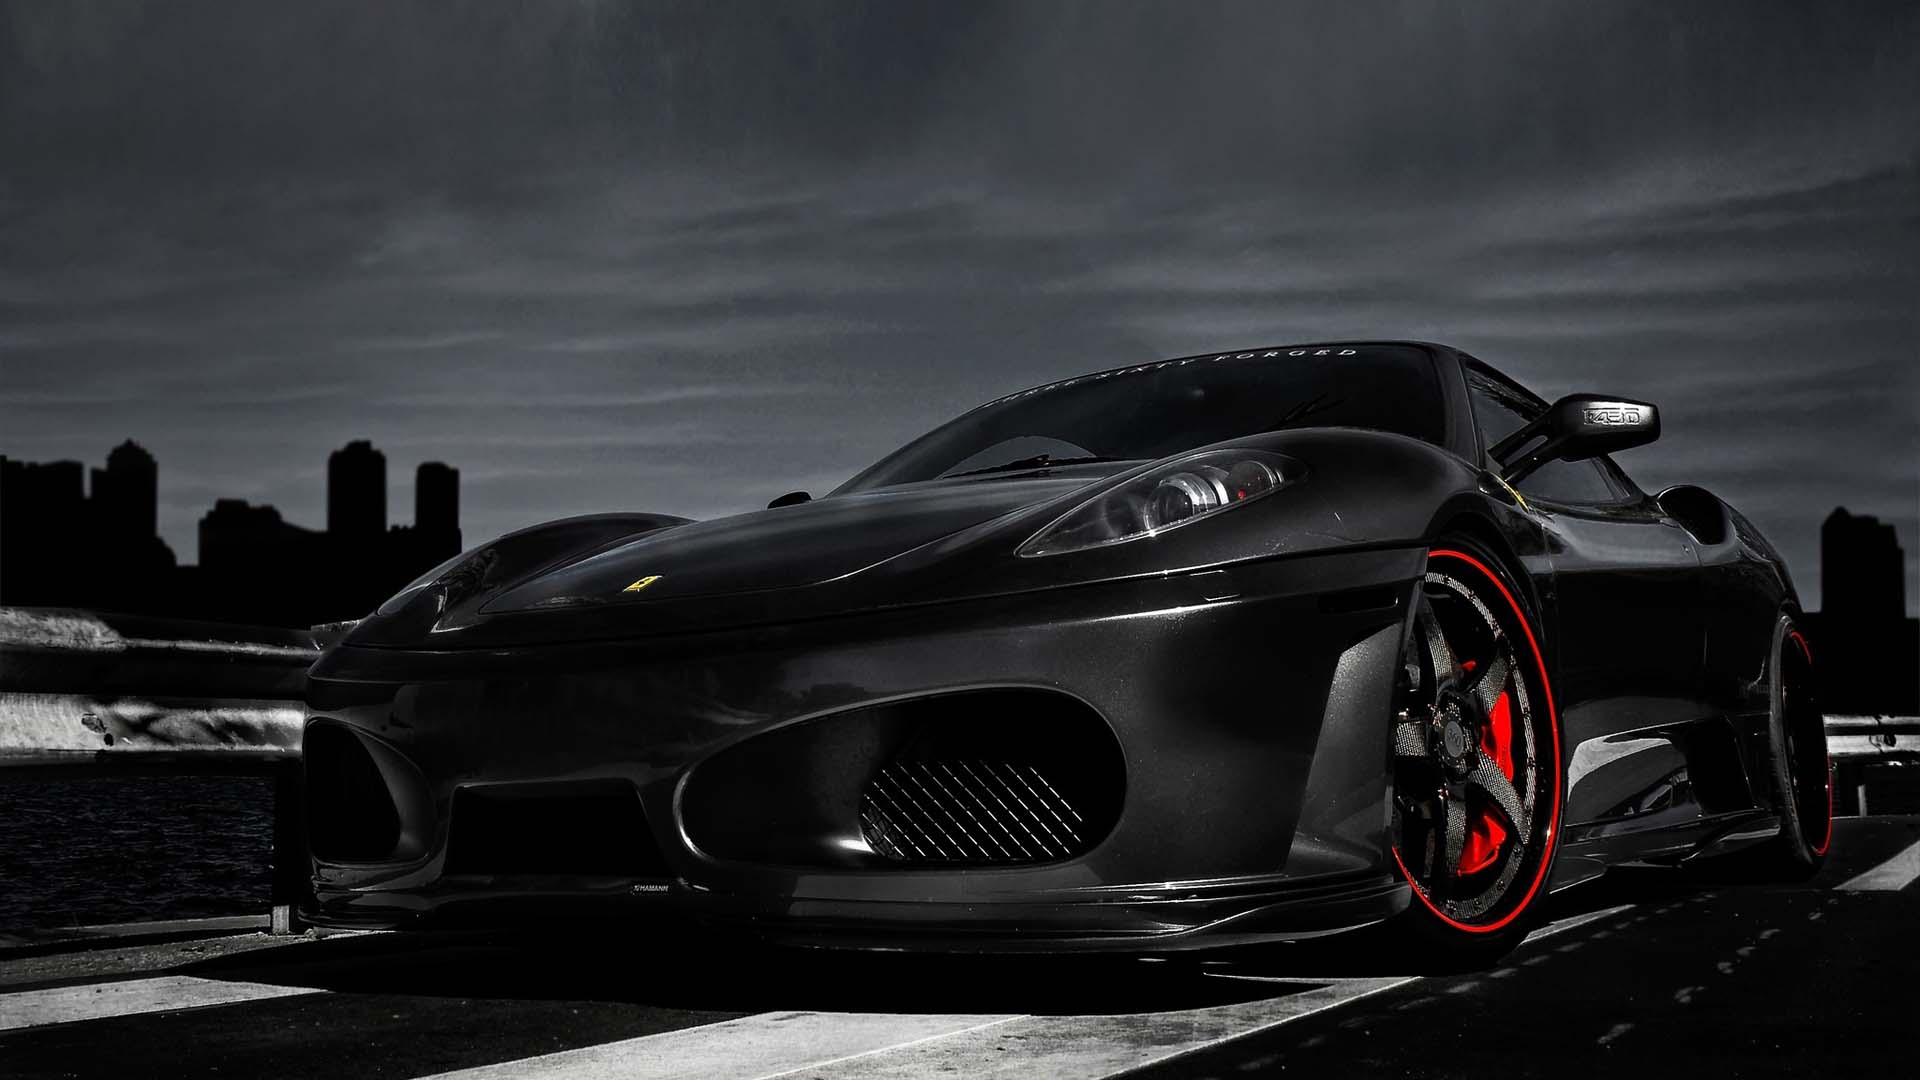 black ferrari wallpapers - wallpaper cave